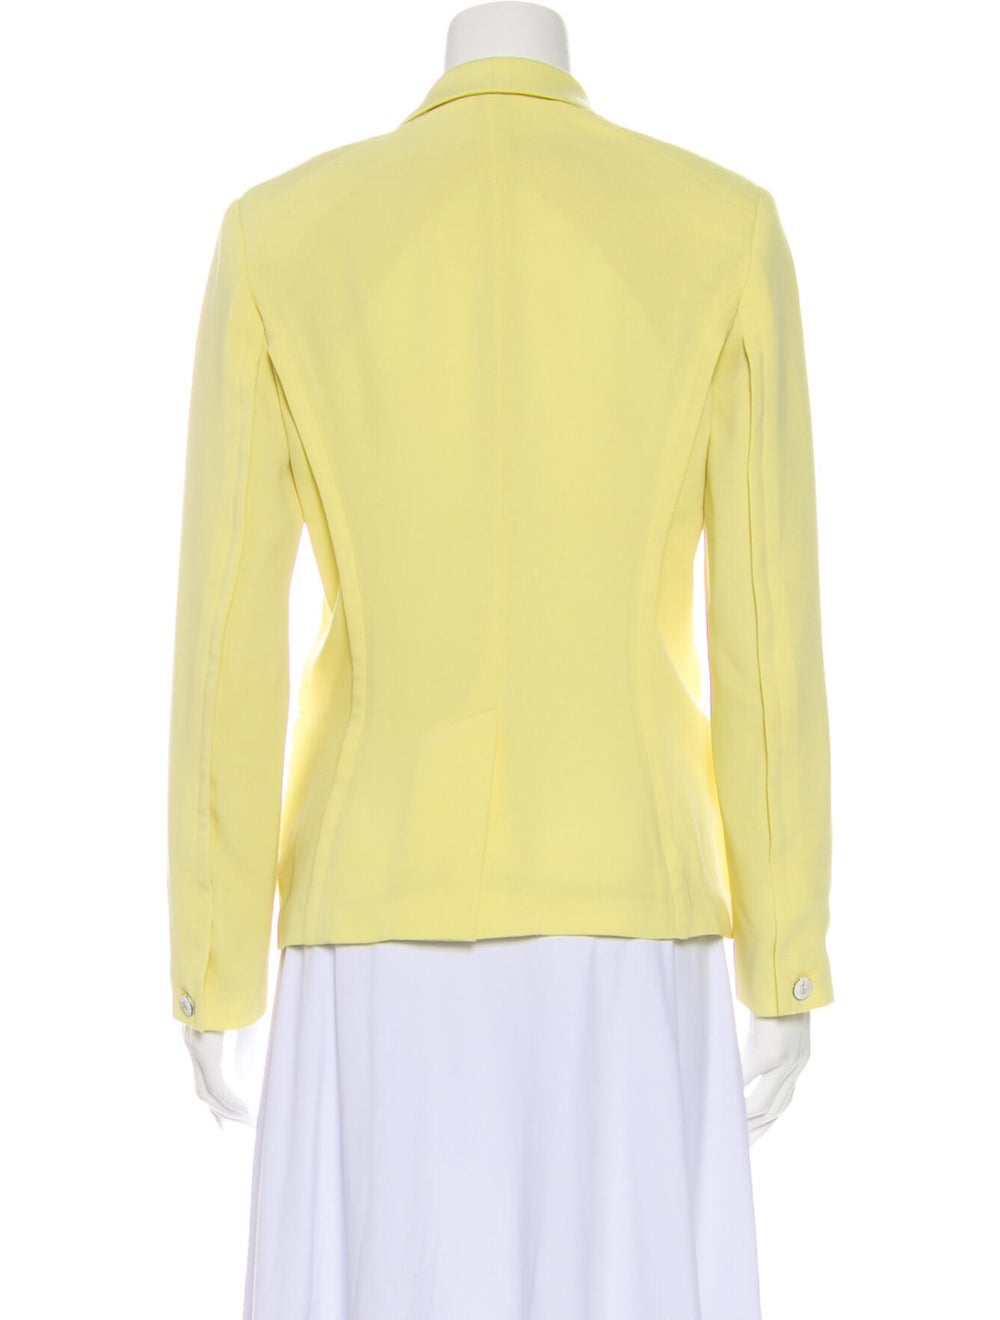 Rag & Bone Blazer Yellow - image 3